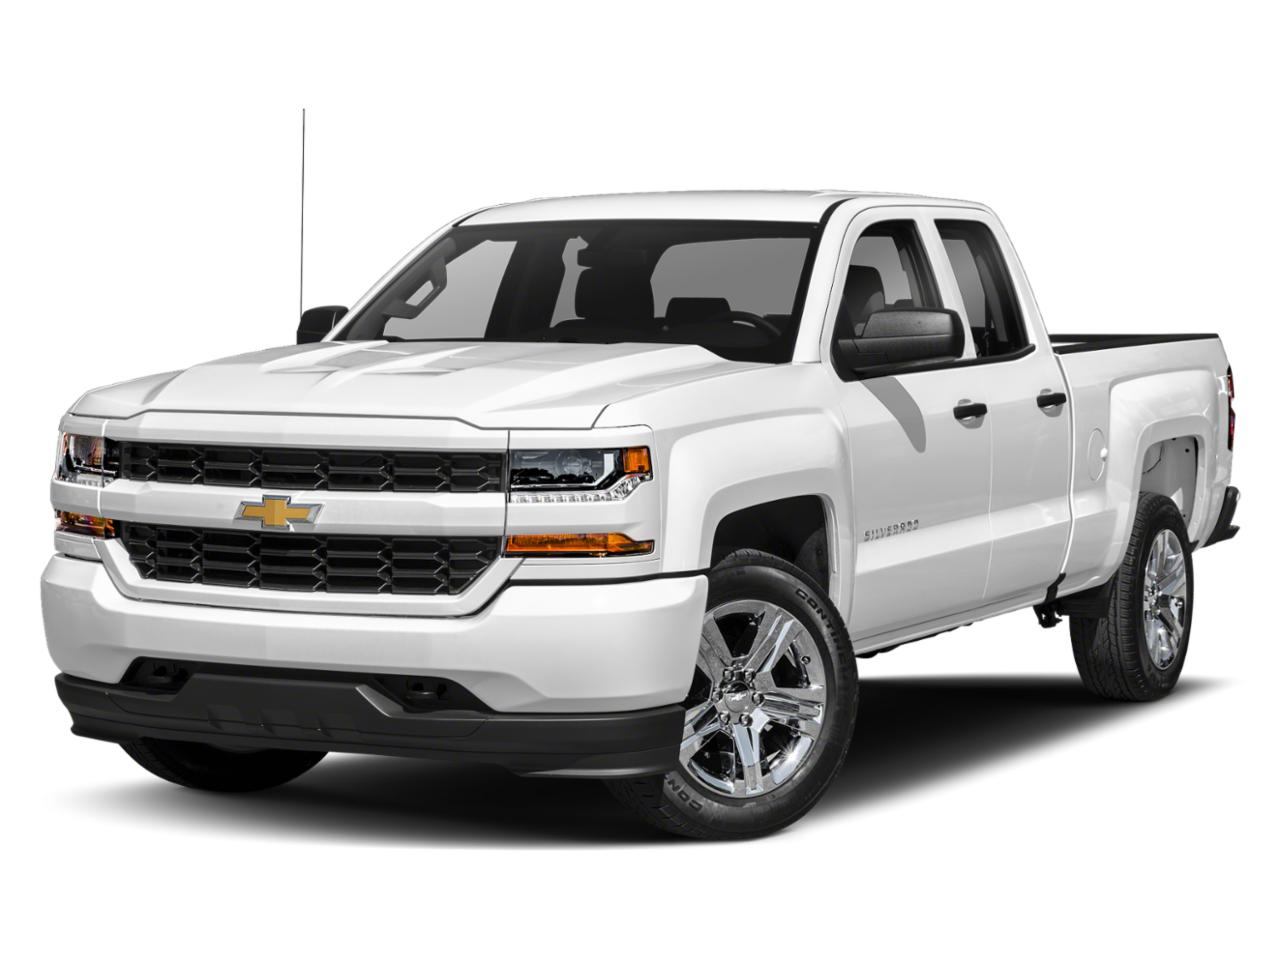 Summit White 2018 Chevrolet Silverado 1500 CUSTOM Extended Cab Pickup Wake Forest NC